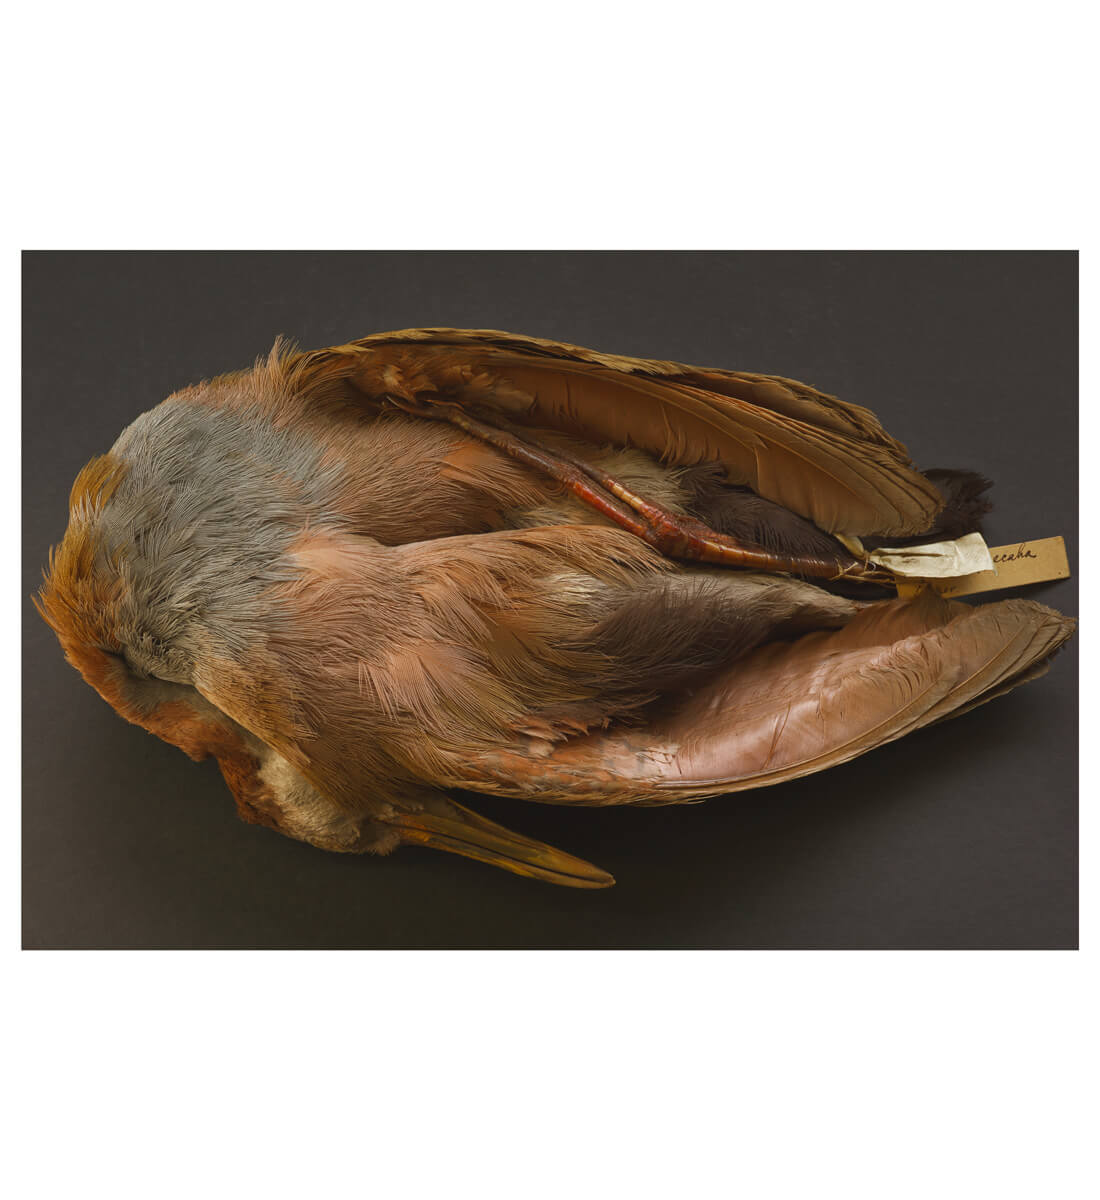 Charles Darwin's bird specimen, collected during the voyage of the Beagle